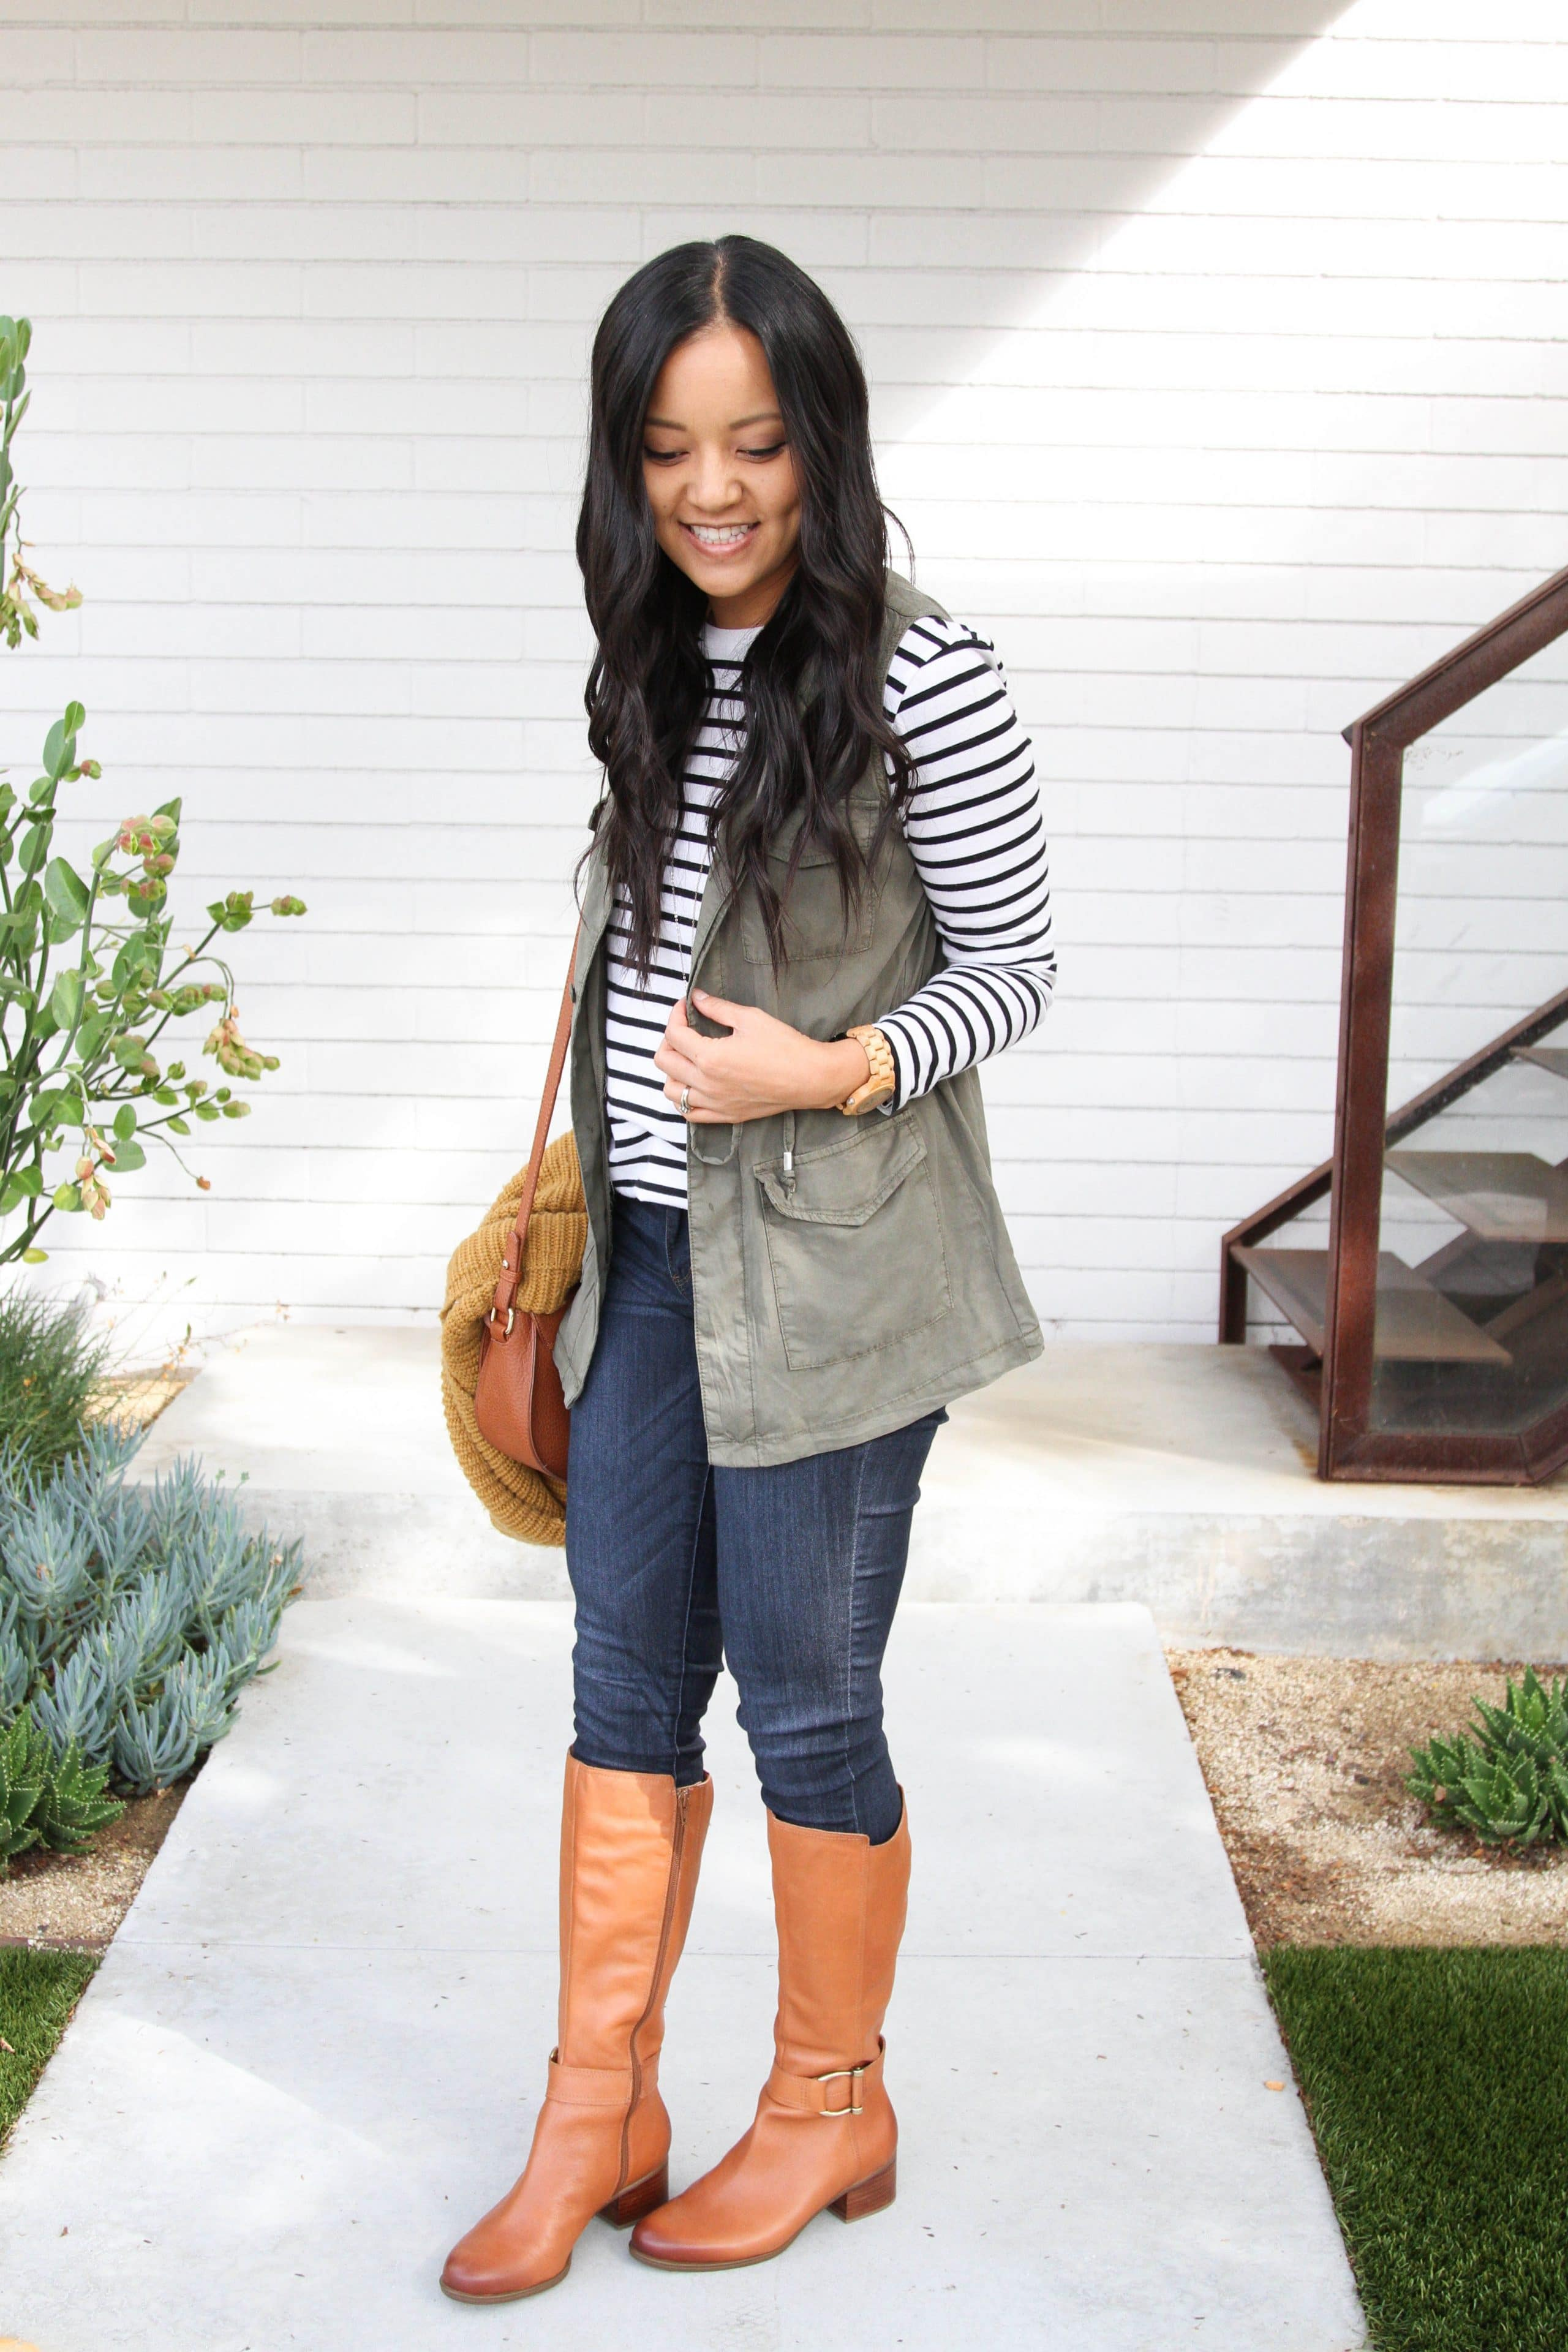 Riding boots + Skinnies + Utility Vest